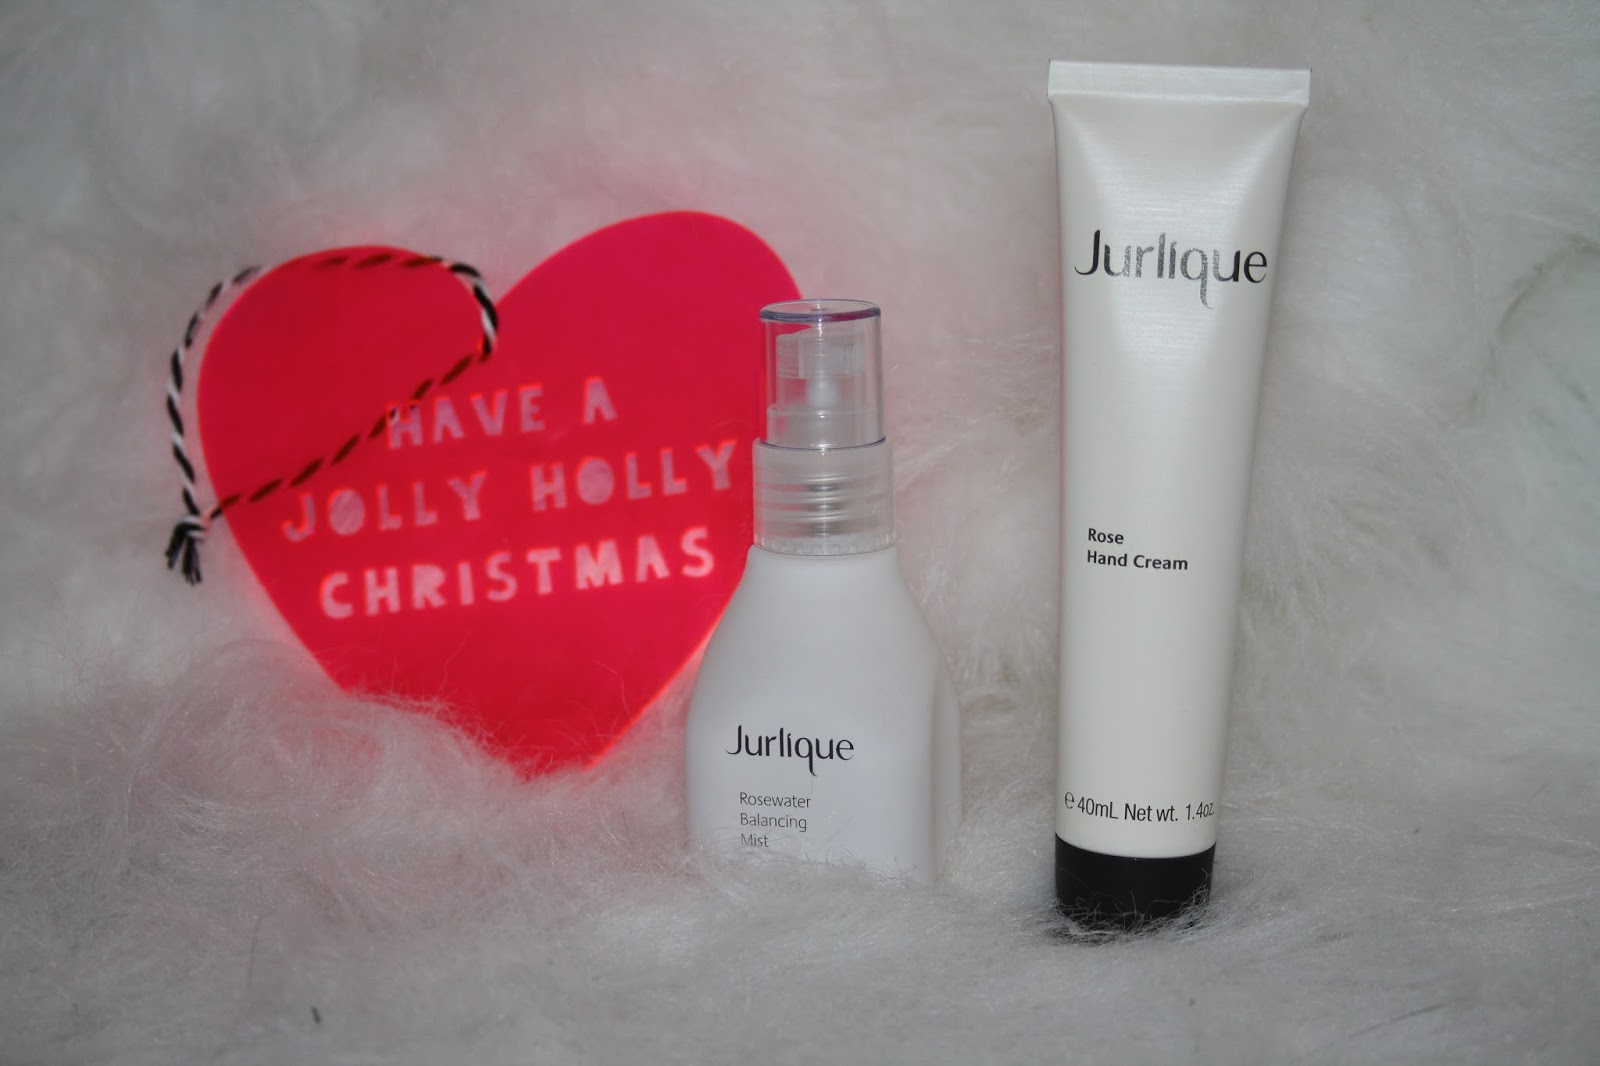 Jurlique Rose Water Mist and Rose Hand Cream